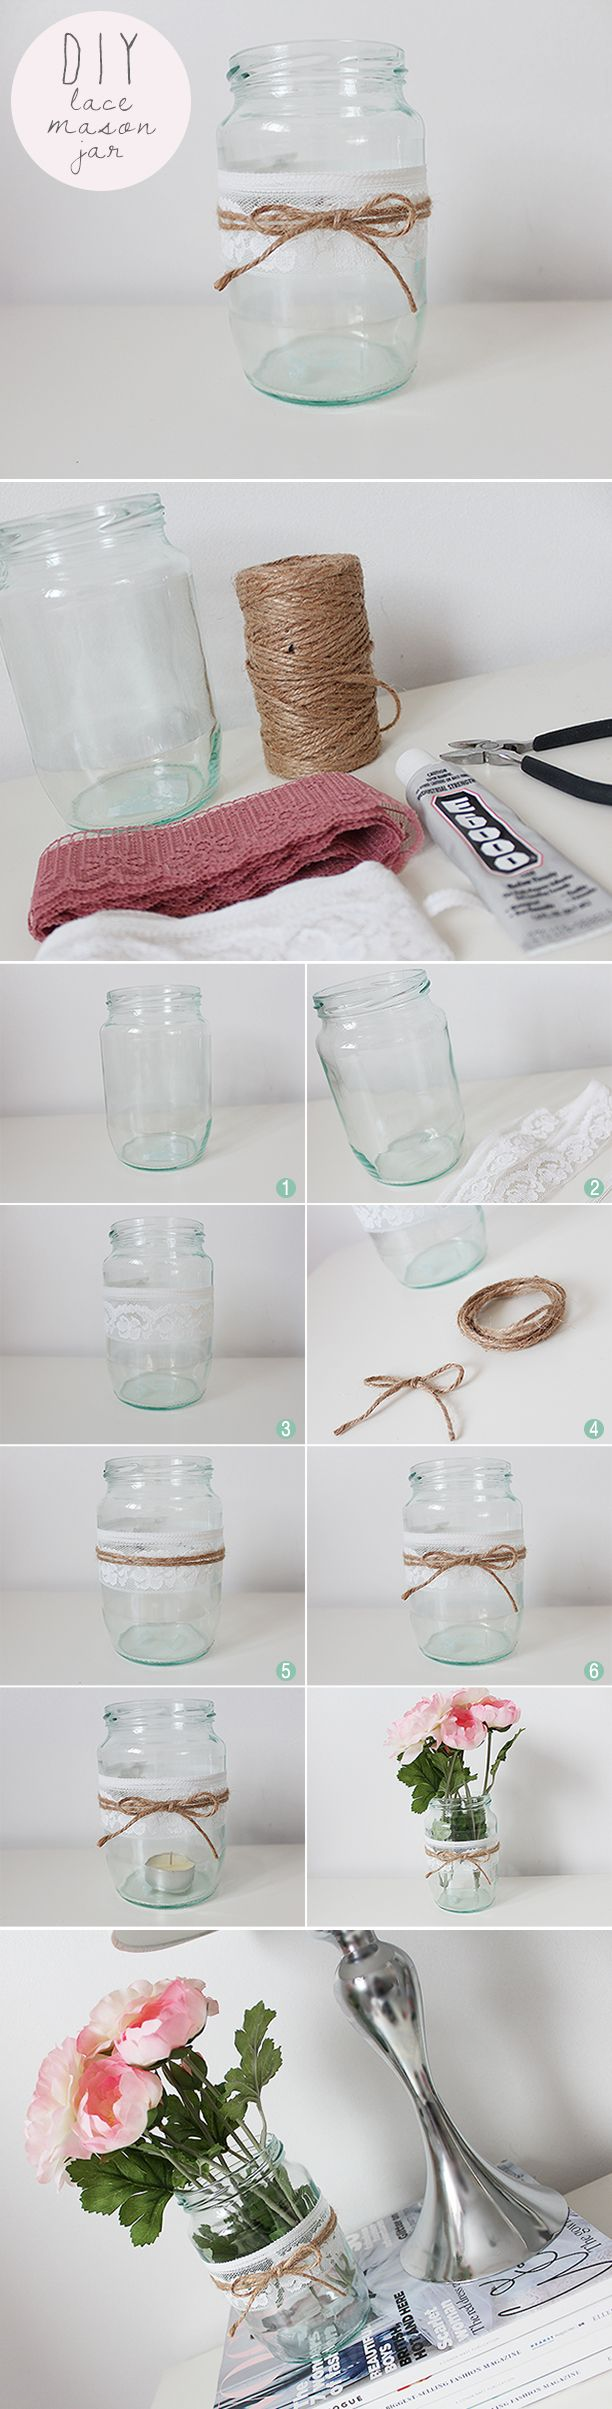 DIY Lace Mason Jar - Nouvelle Daily